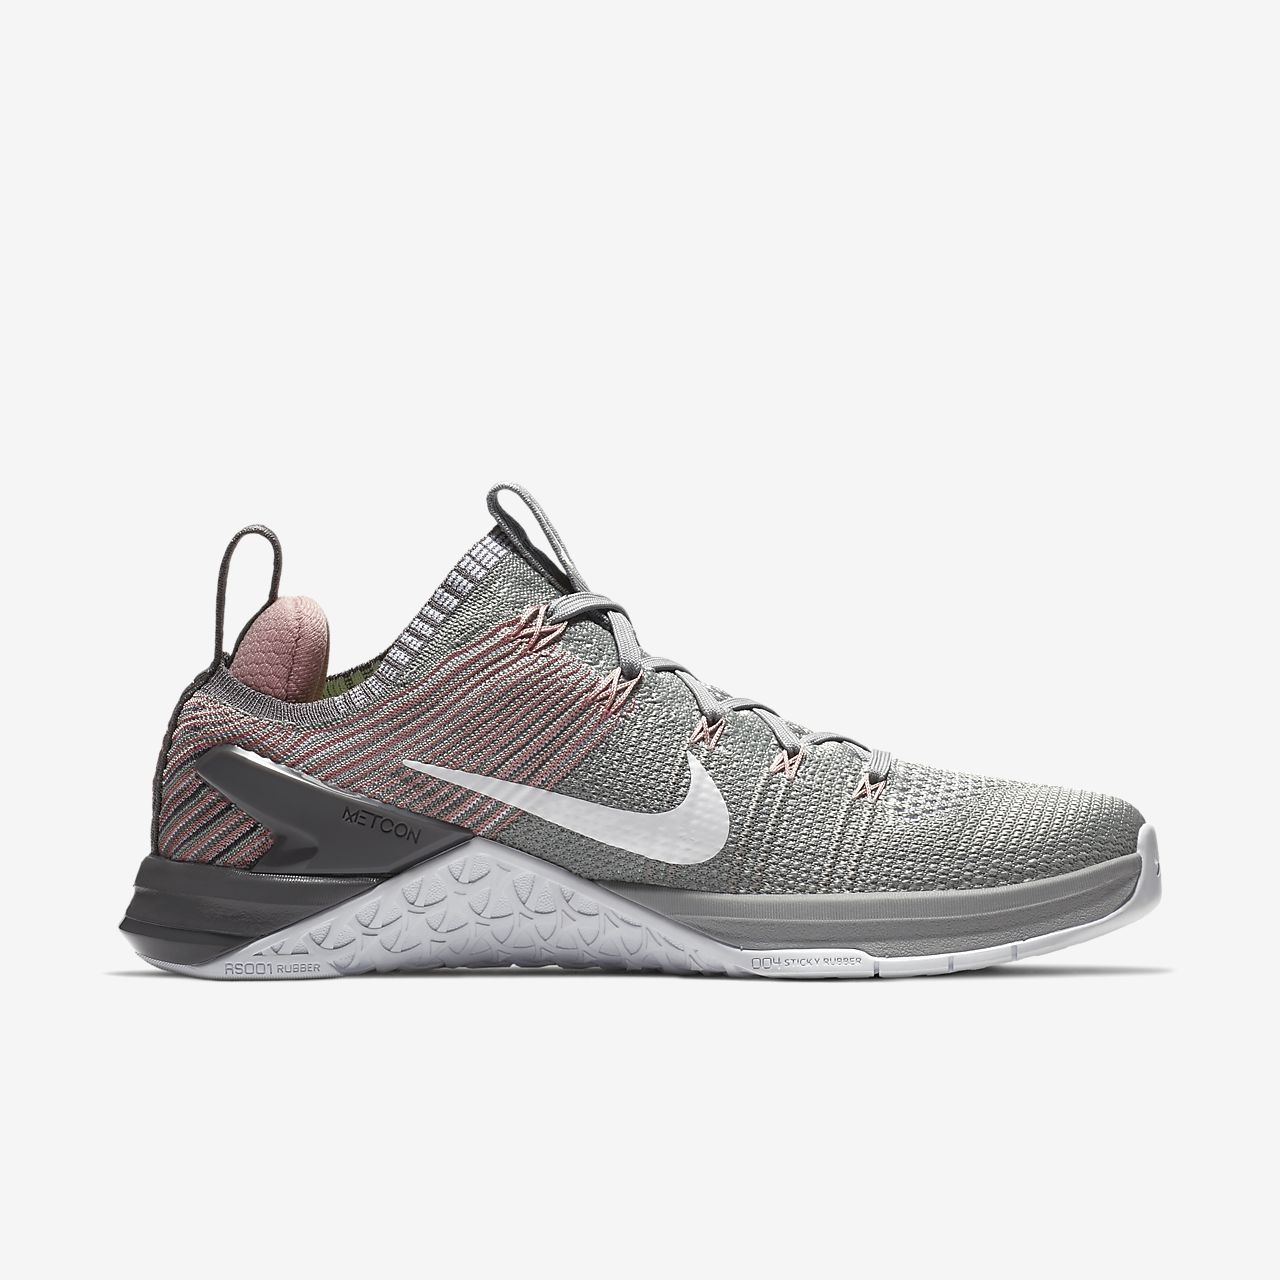 Womens Nike Metcon 2 Womens Cross Training Shoes Grey New In Box Sale Online Size 38